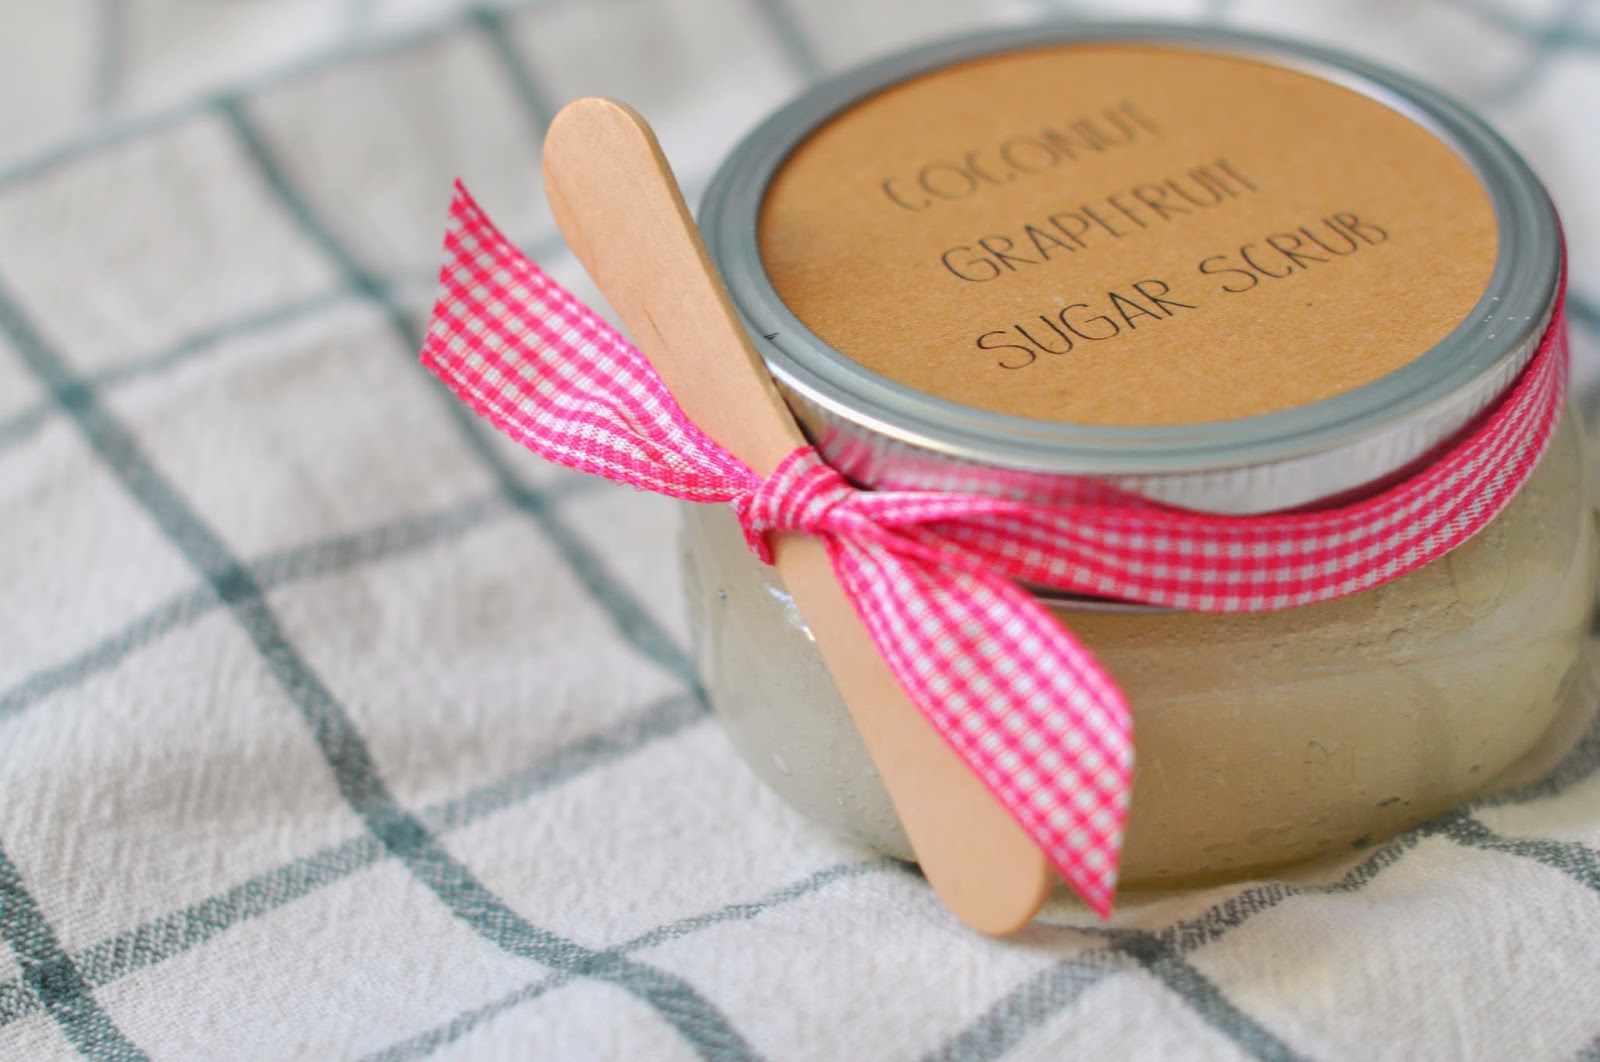 Coconut grapefruit sugar scrub diy